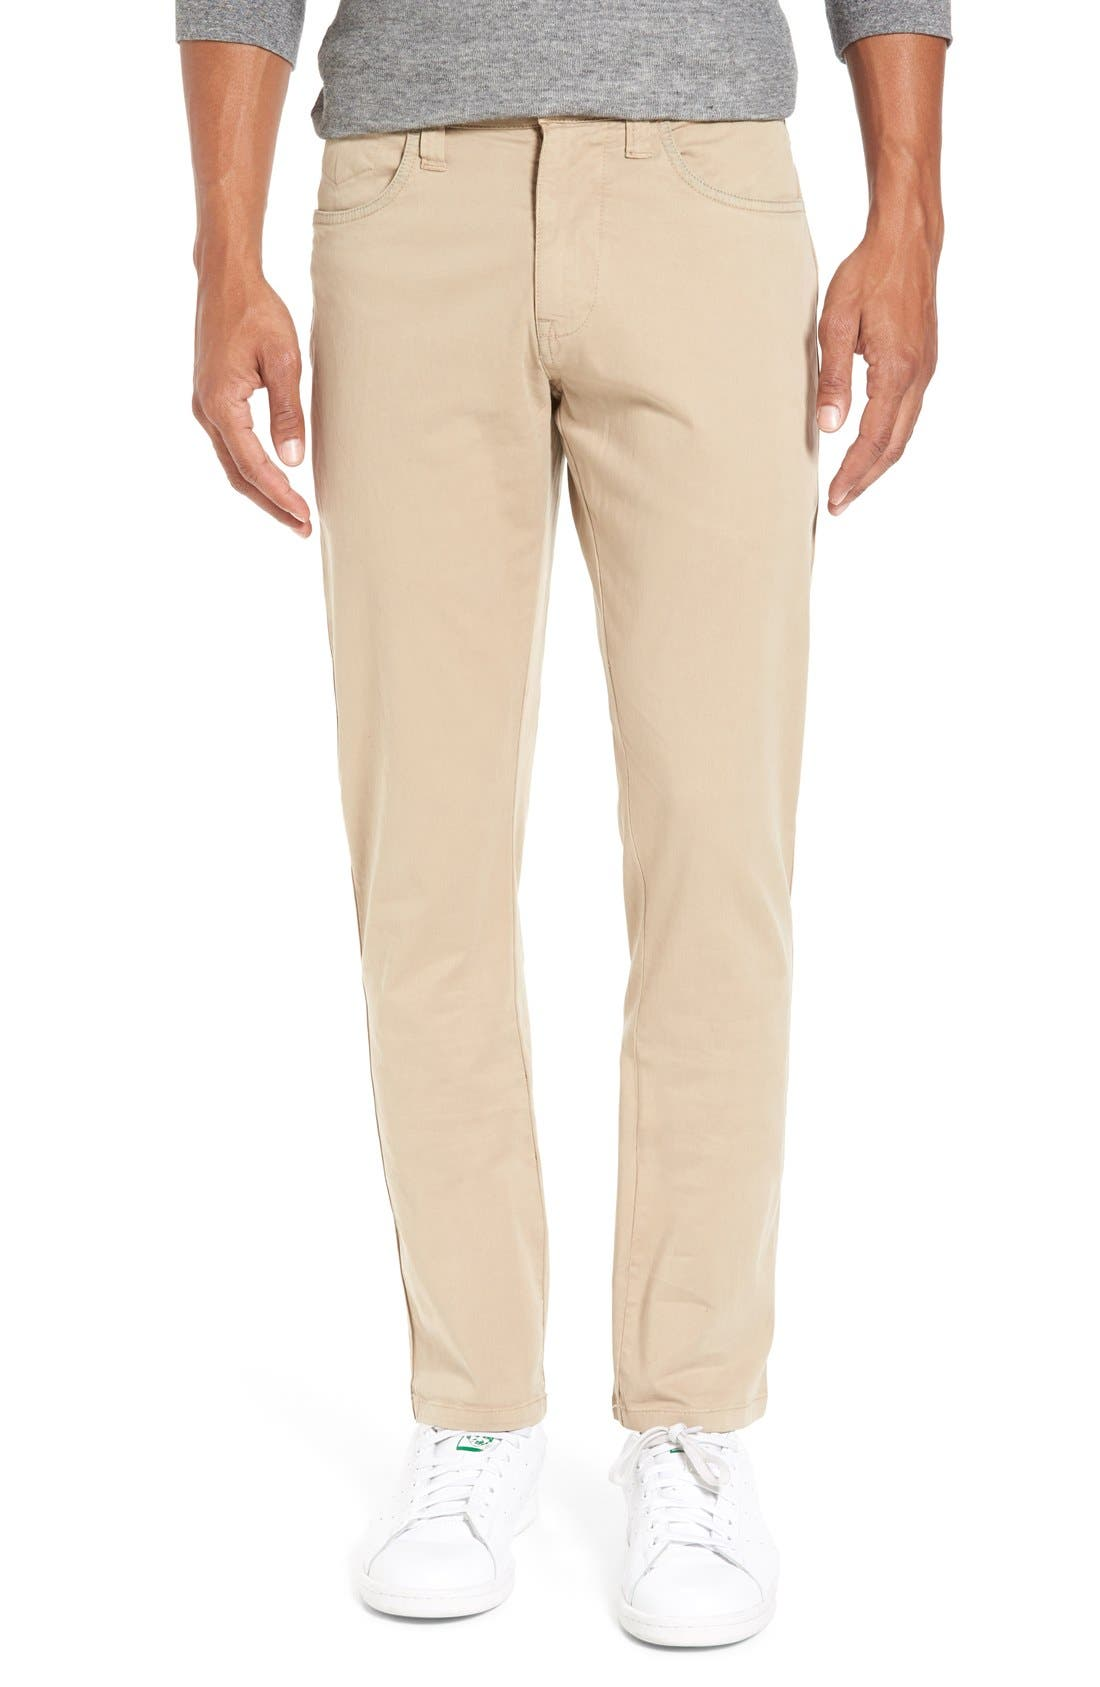 'Sunny' Slim Fit Stretch Twill Pants,                             Main thumbnail 1, color,                             Khaki